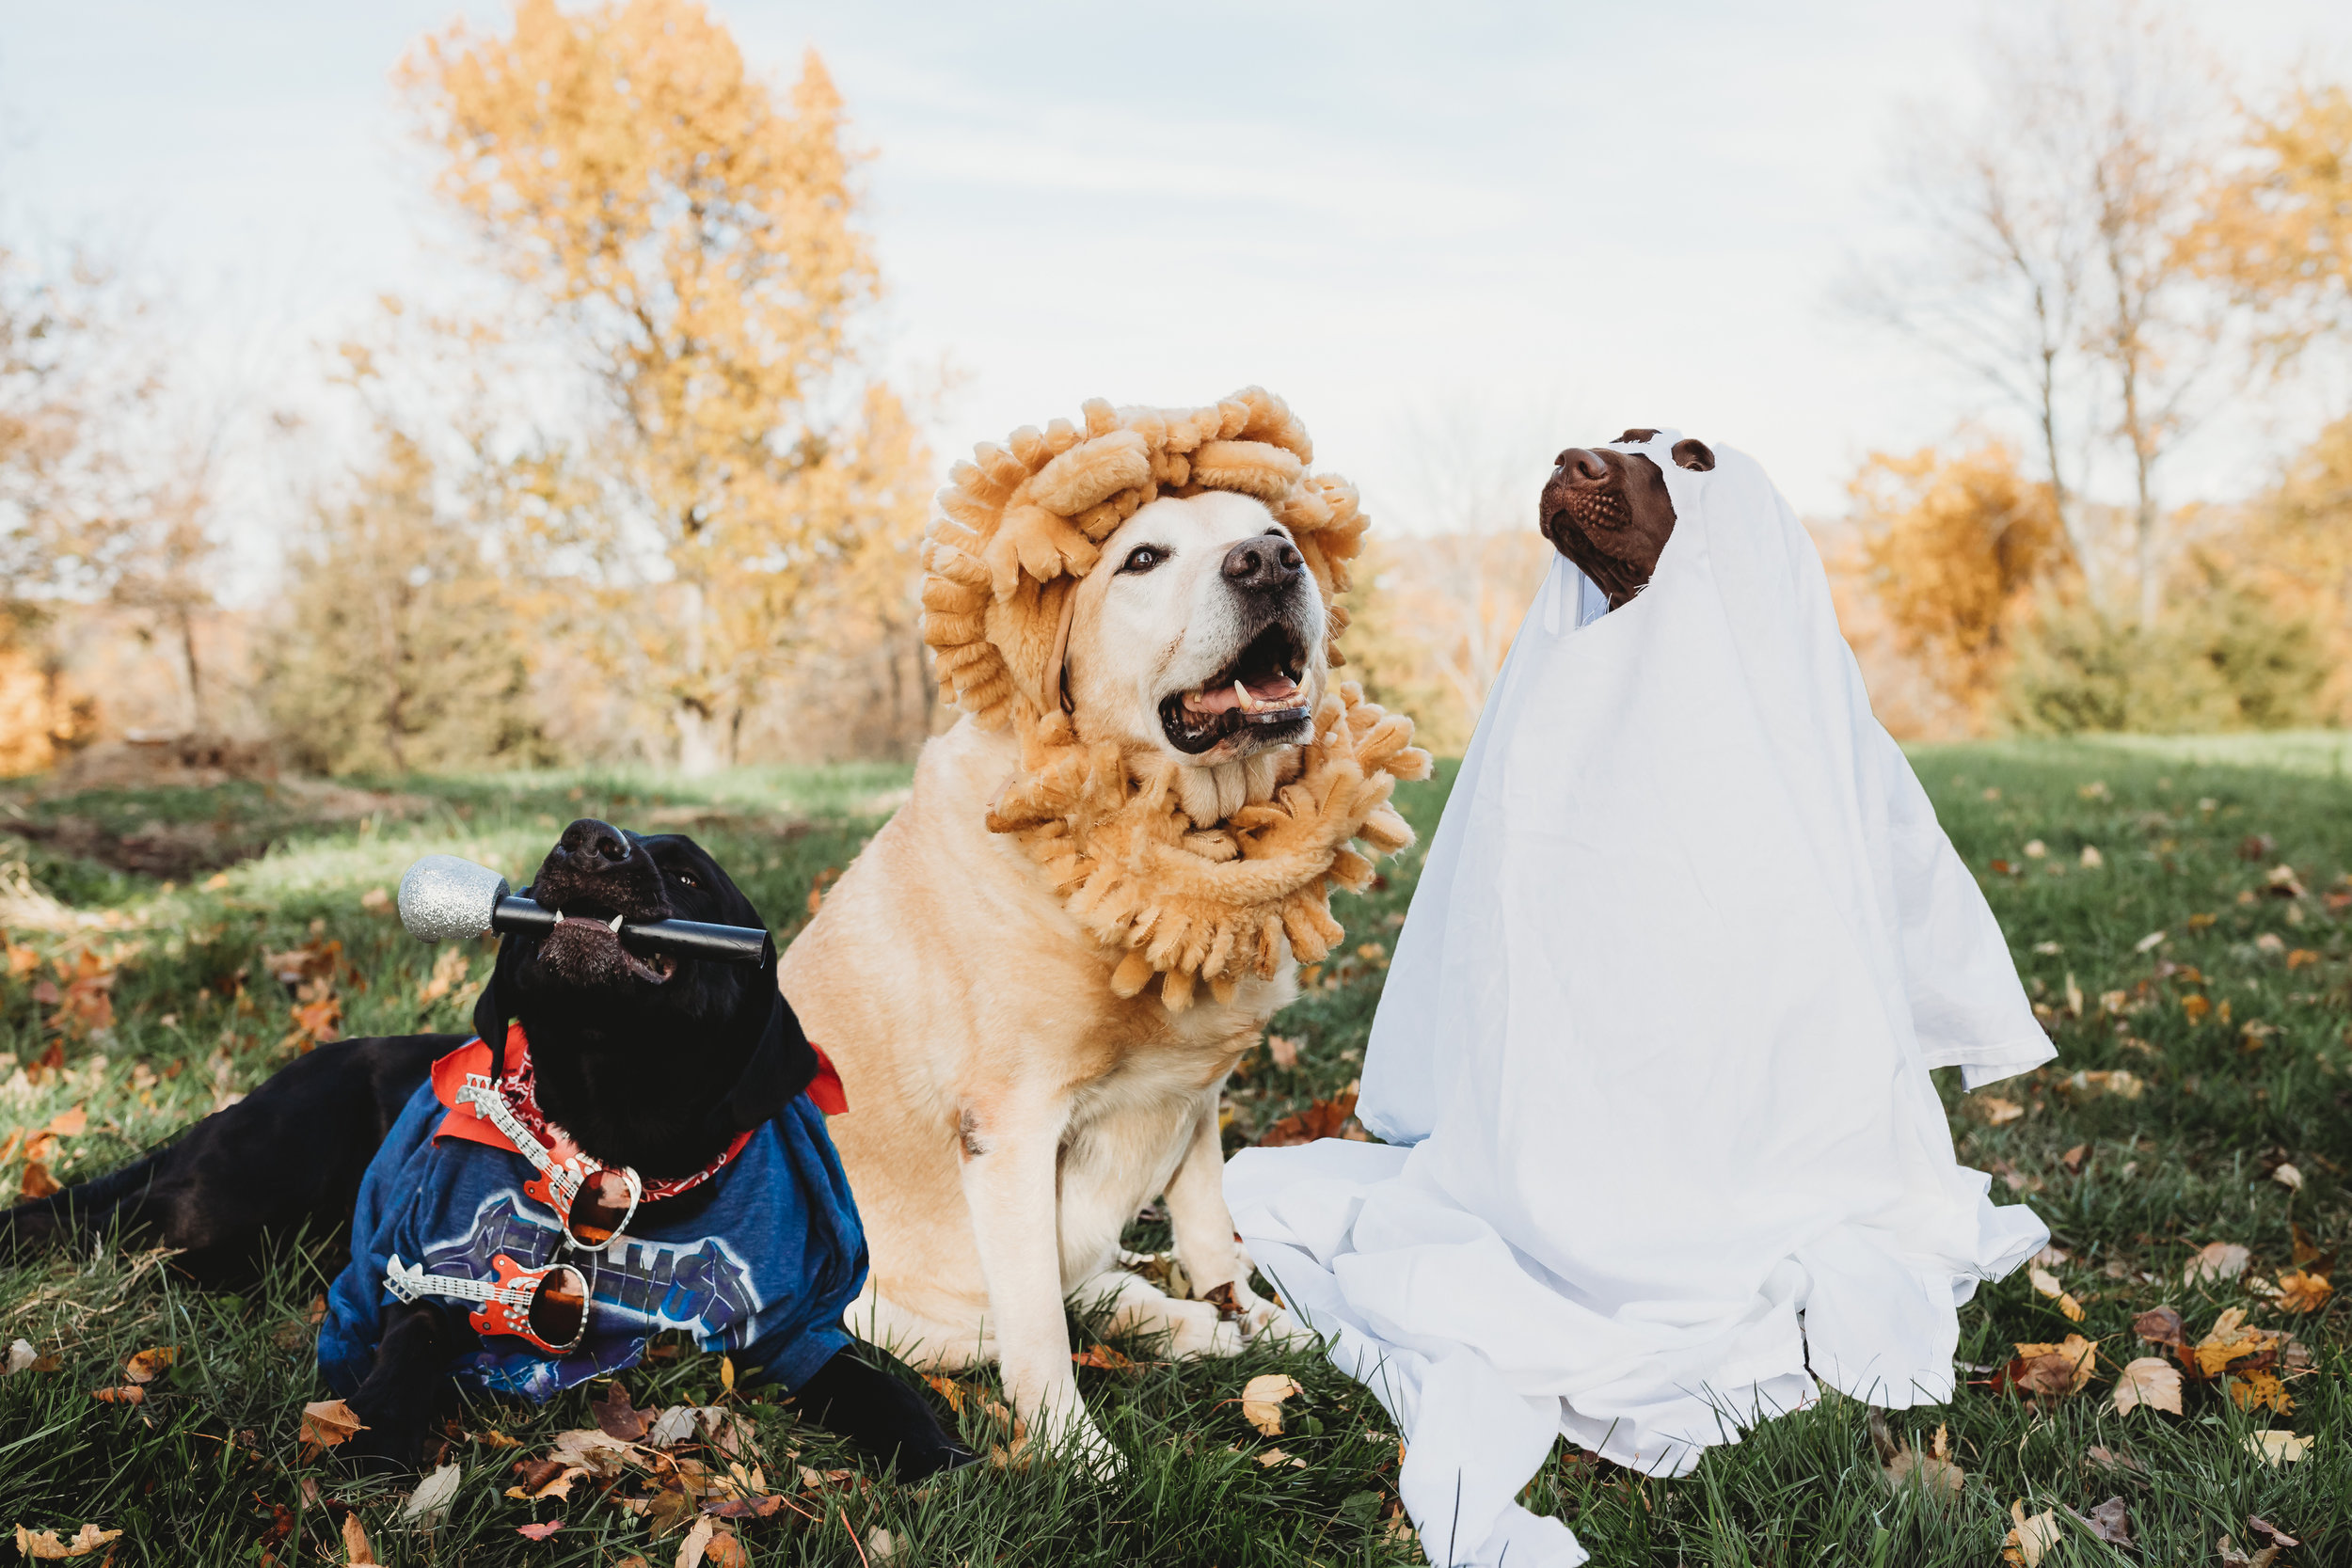 My Boys - These 3 have stolen my heart, my fur babes. Bear Bryant, Charlie Brown, and Riggins Lee. You don't have to ask twice about bringing your fur babes to a session!